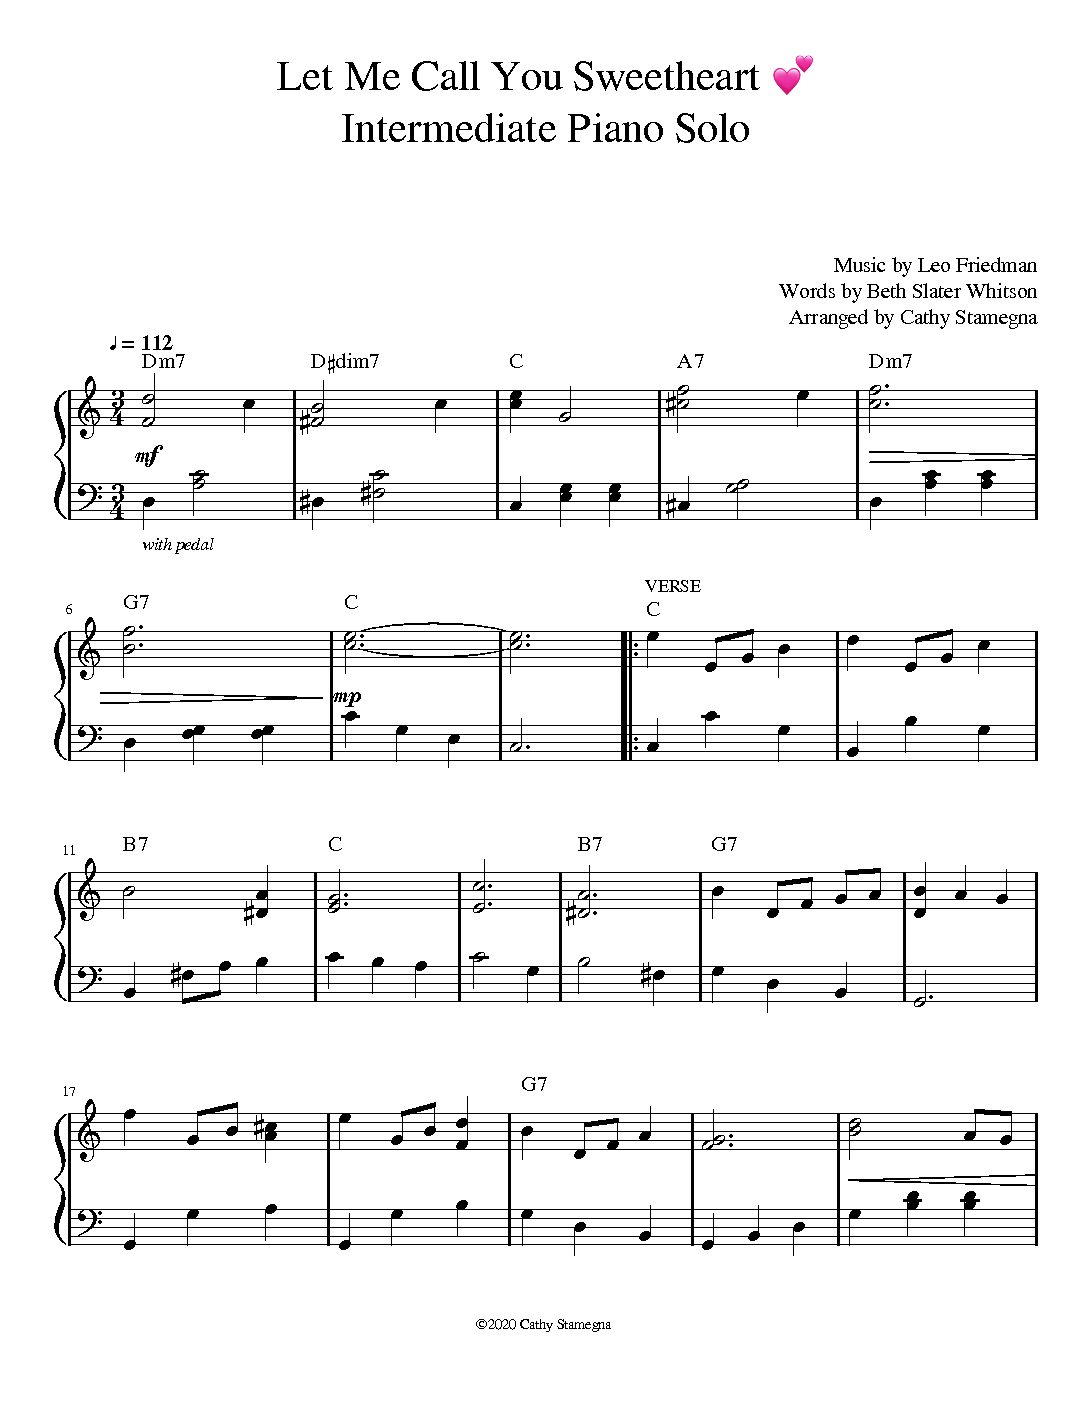 Let Me Call You Sweetheart (Intermediate Piano Solo)